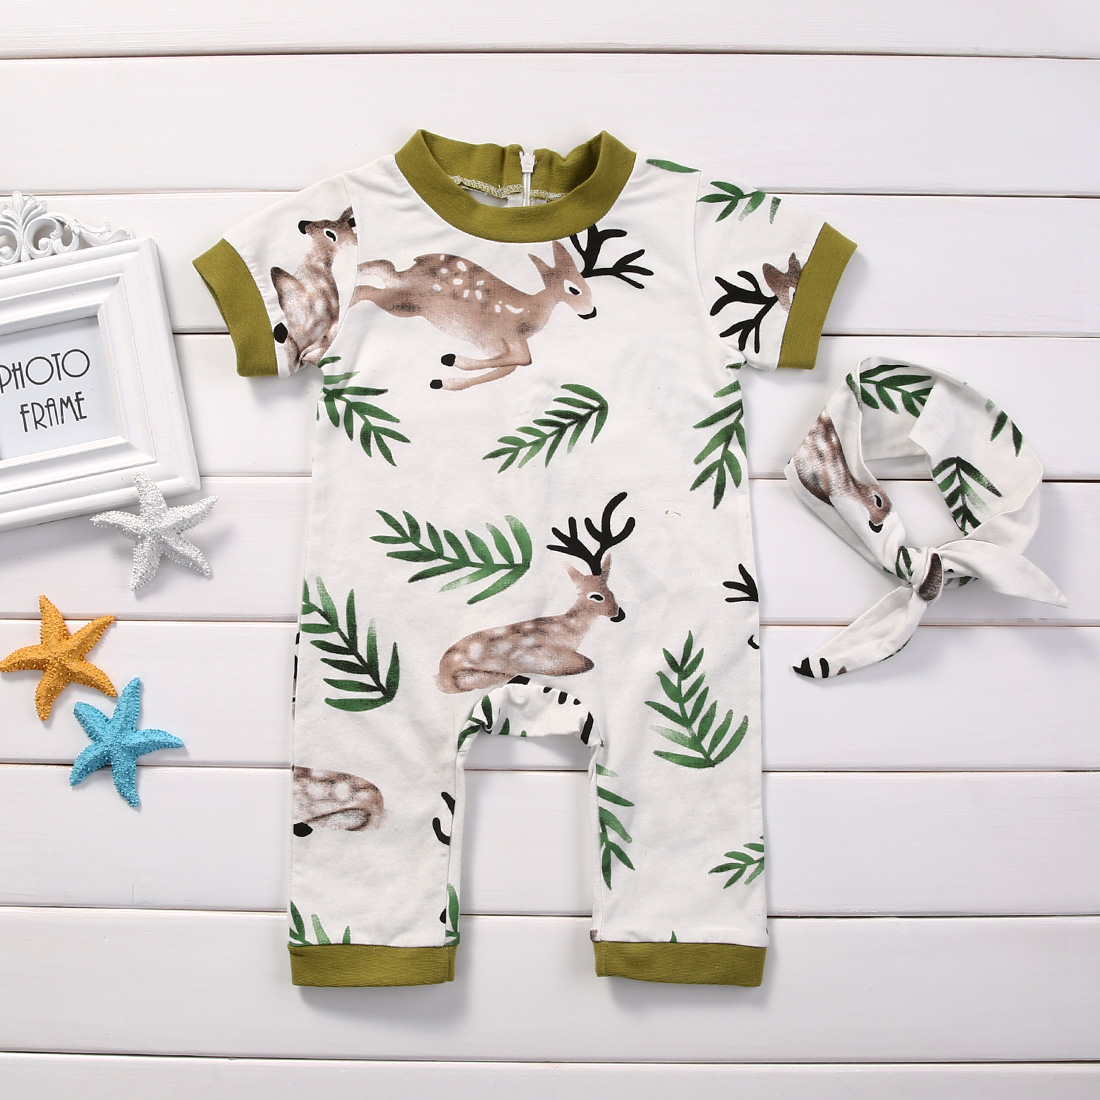 2pcs Baby Set Newborn Infant Baby Girls Boys Clothes Summer Short Sleeve Deer Leaf Back Zipper Jumpsuit Romper+Headband Baby Set 4pcs set newborn baby clothes infant bebes short sleeve mini mama bodysuit romper headband gold heart striped leg warmer outfit